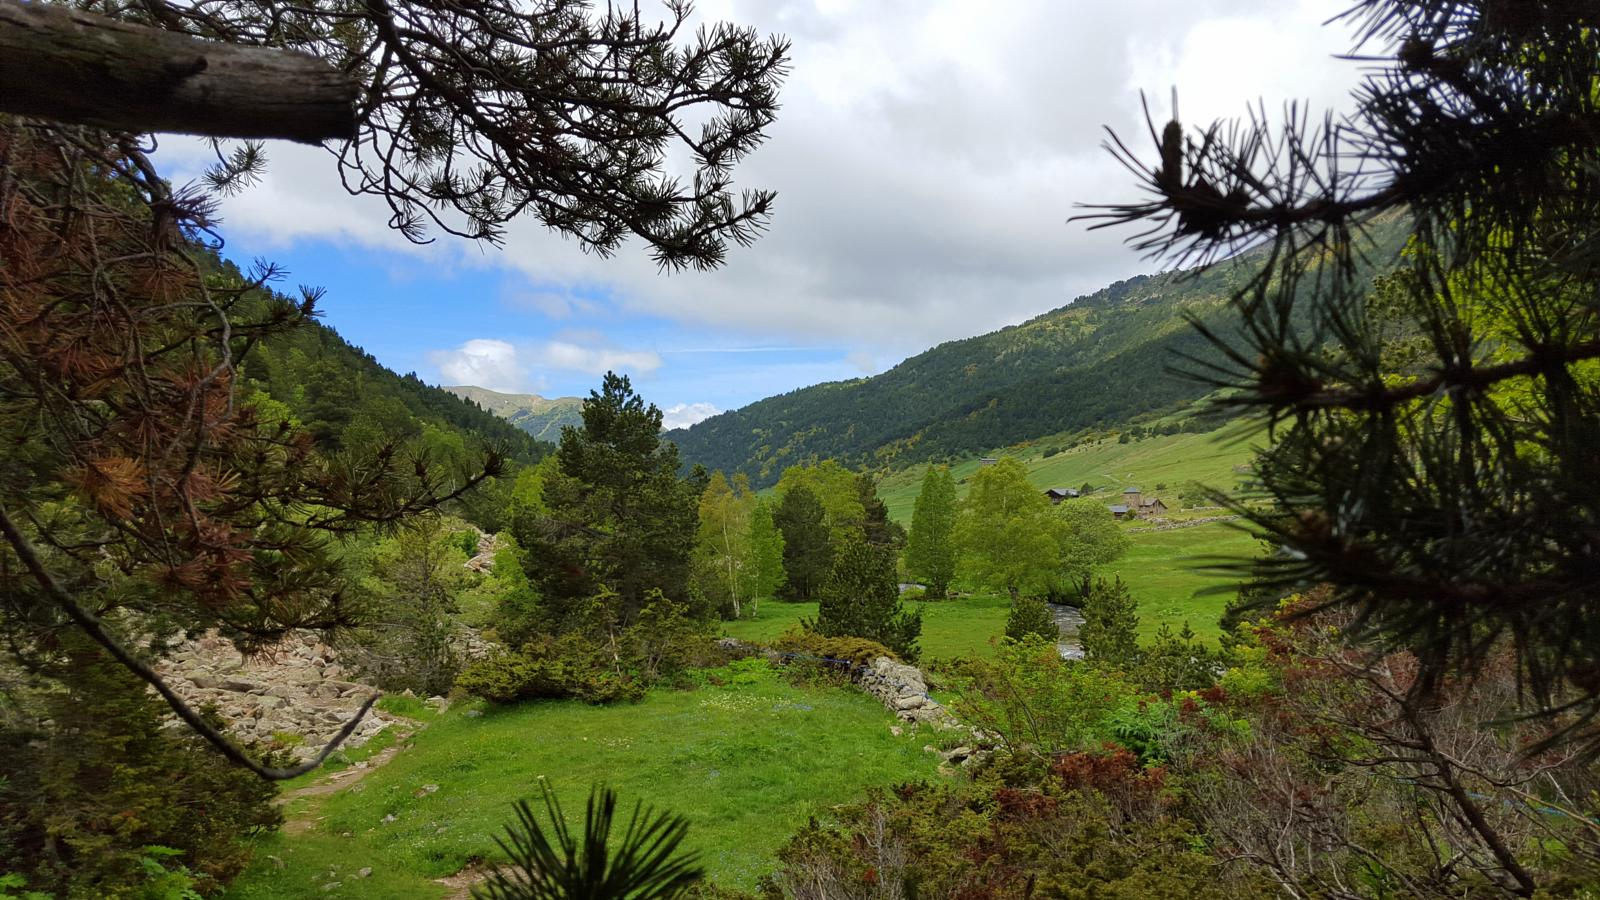 Photo de Valle de Incles (Vall d'Incles) per Cami de L'Obac - Andorra